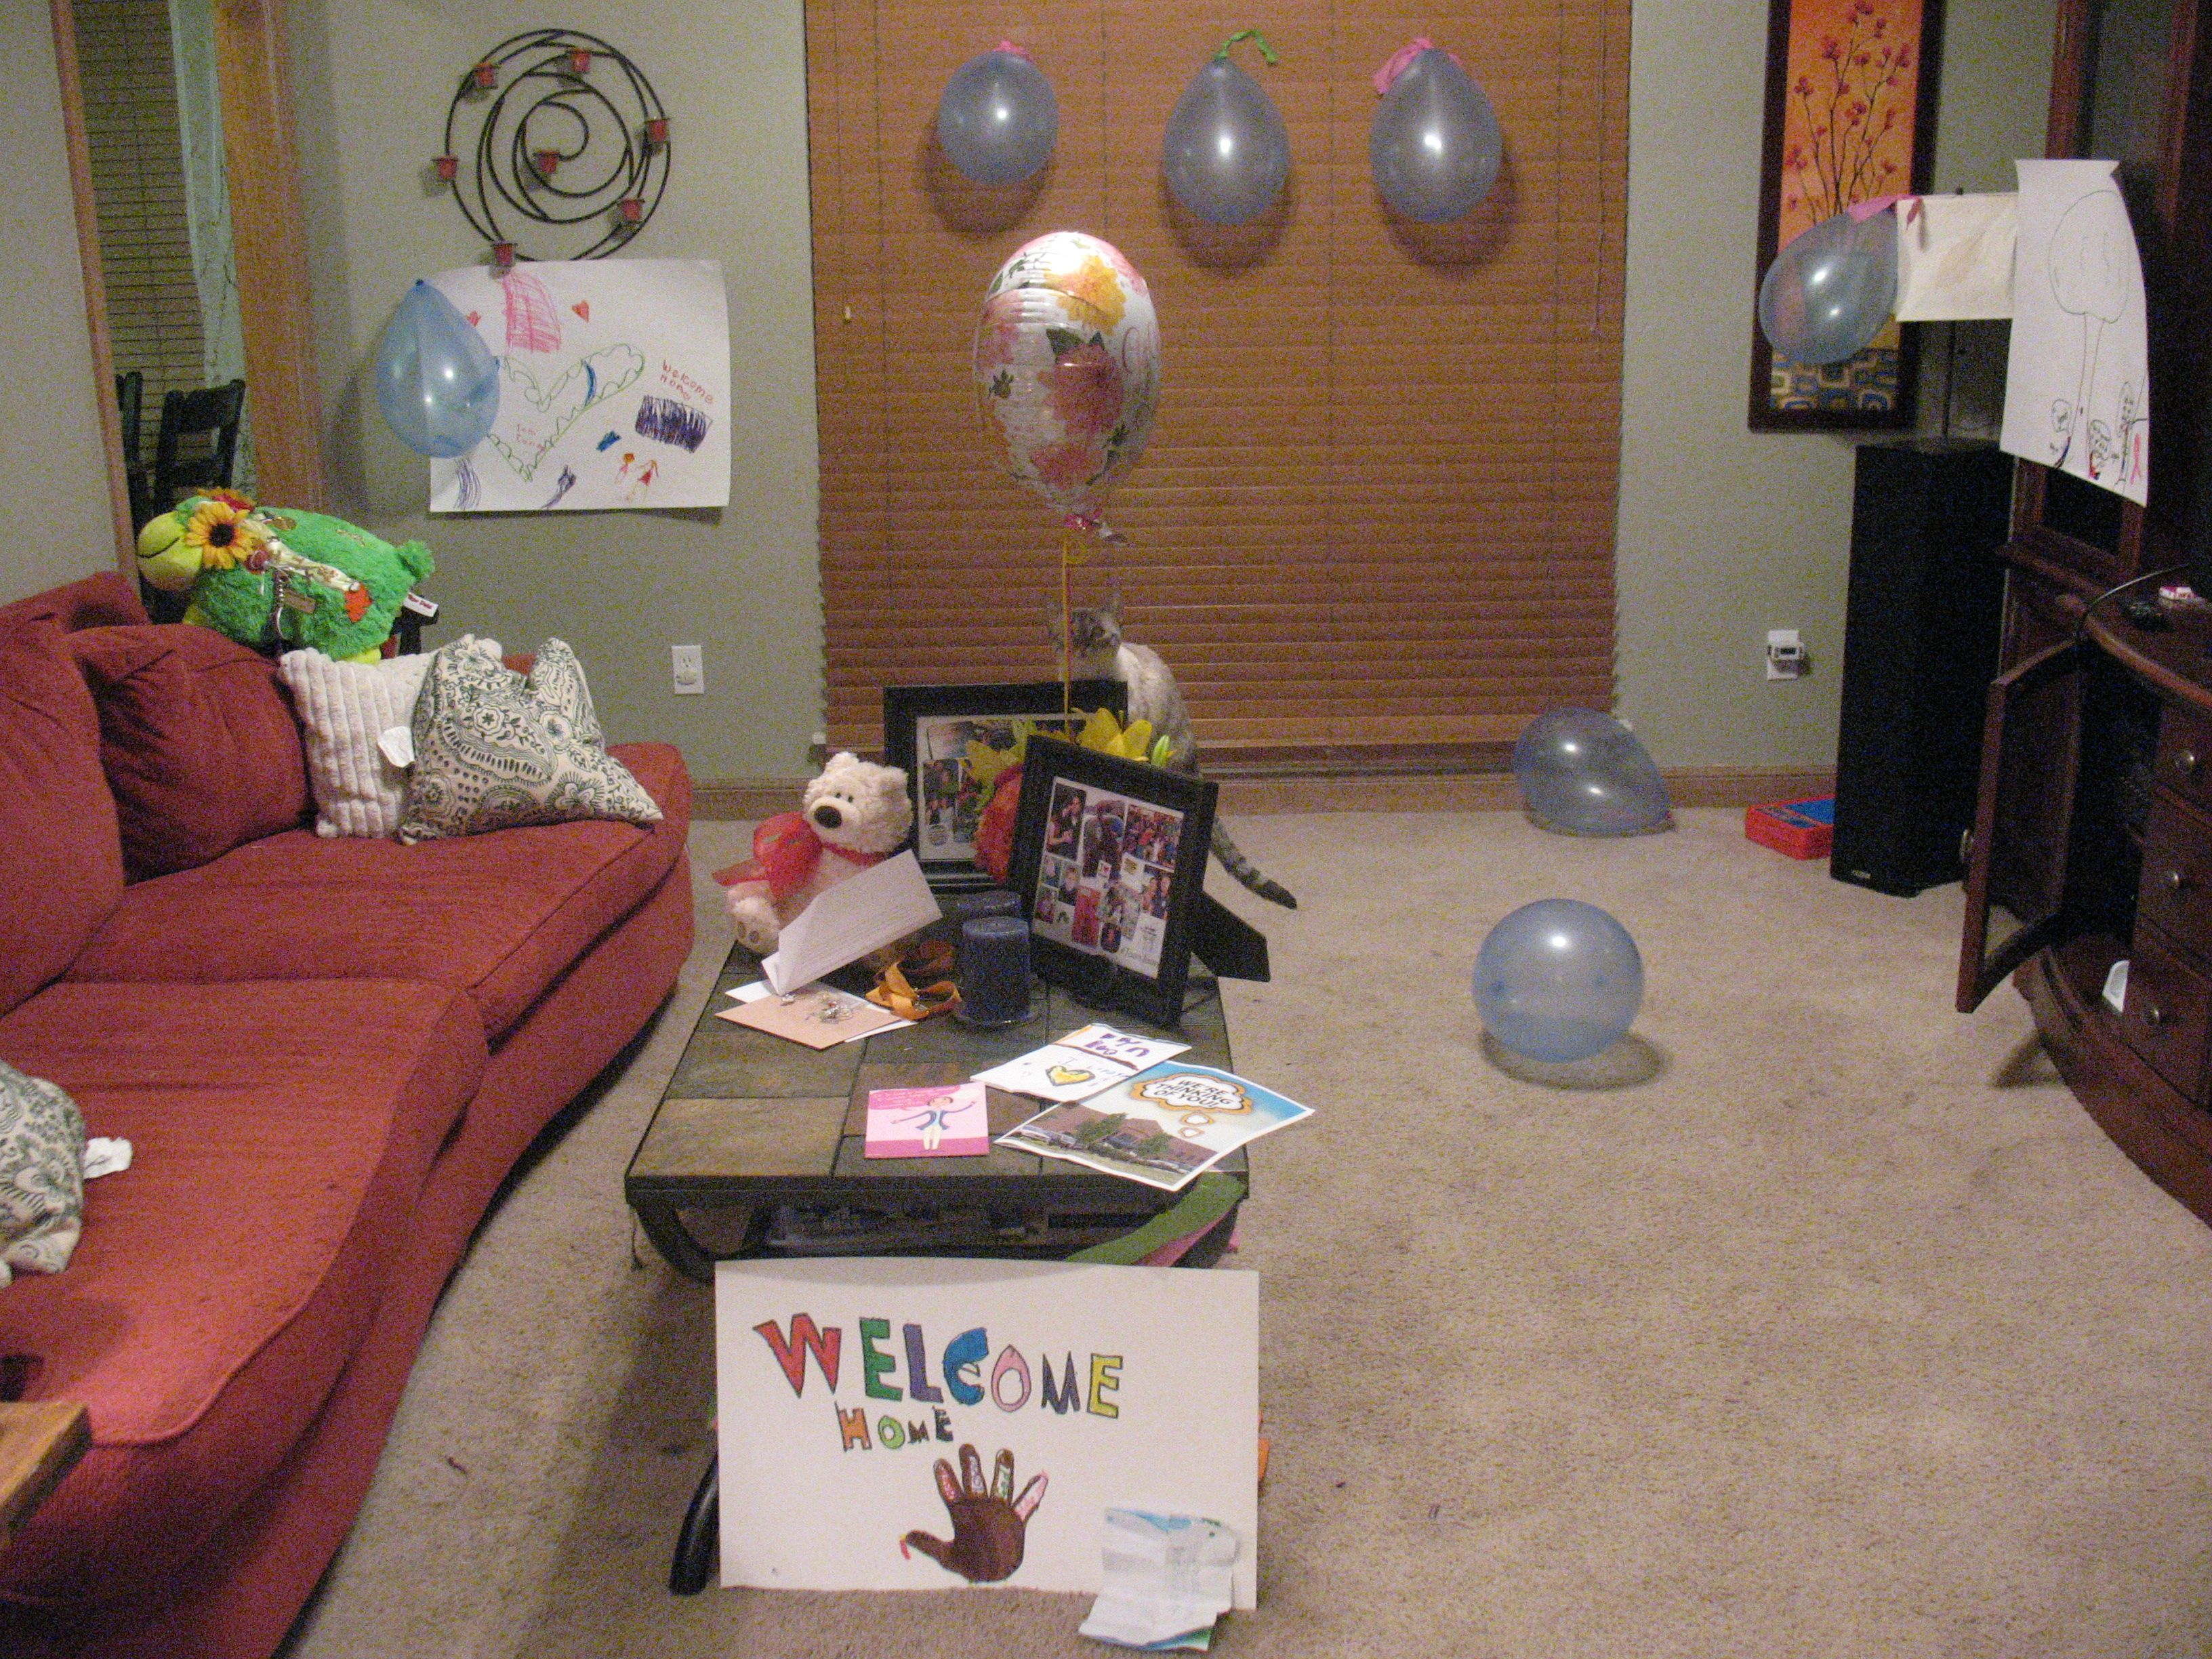 My welcome home after my first surgery. It was absolutely perfect! (special thanks to Krisan!)